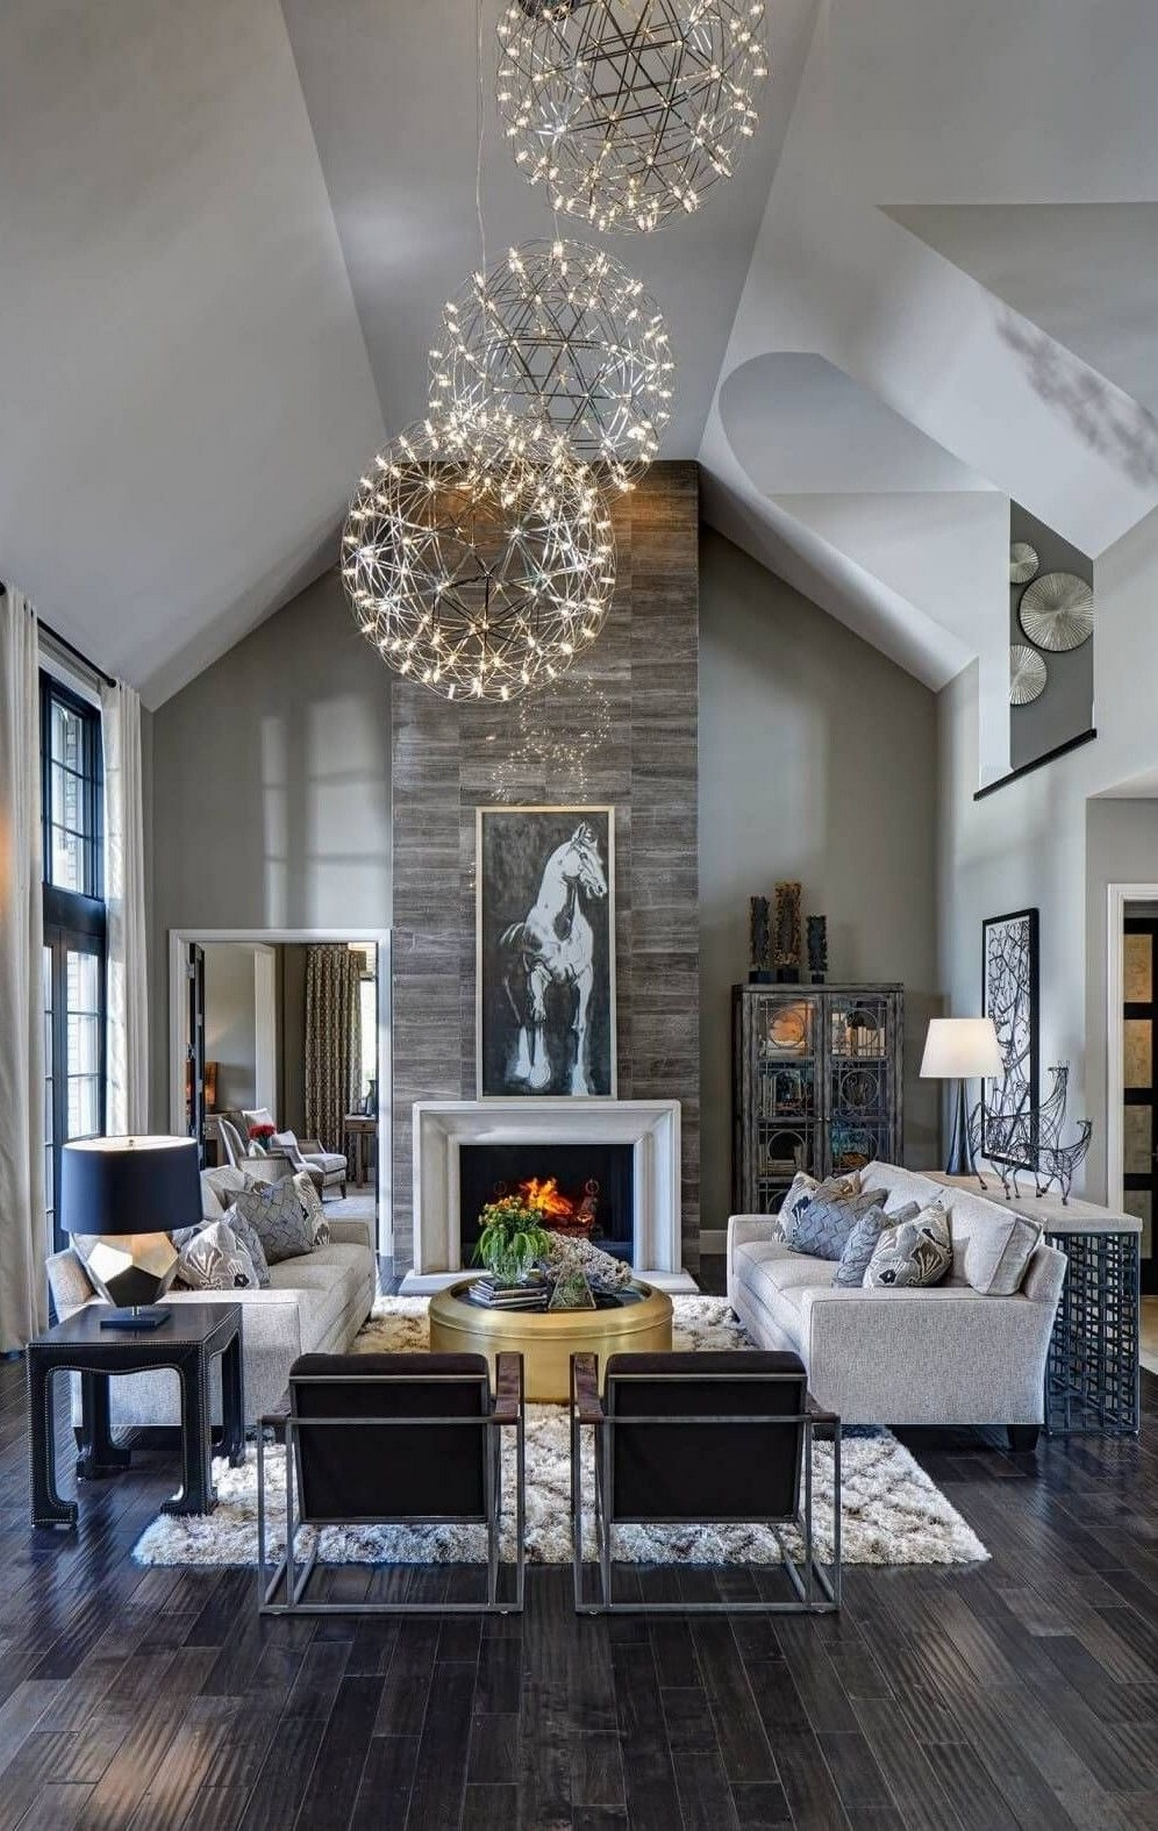 41 Best Of Living Room Decorating Ideas Three Tips For Color Schemes Furniture Arrangement And Home Decor 27